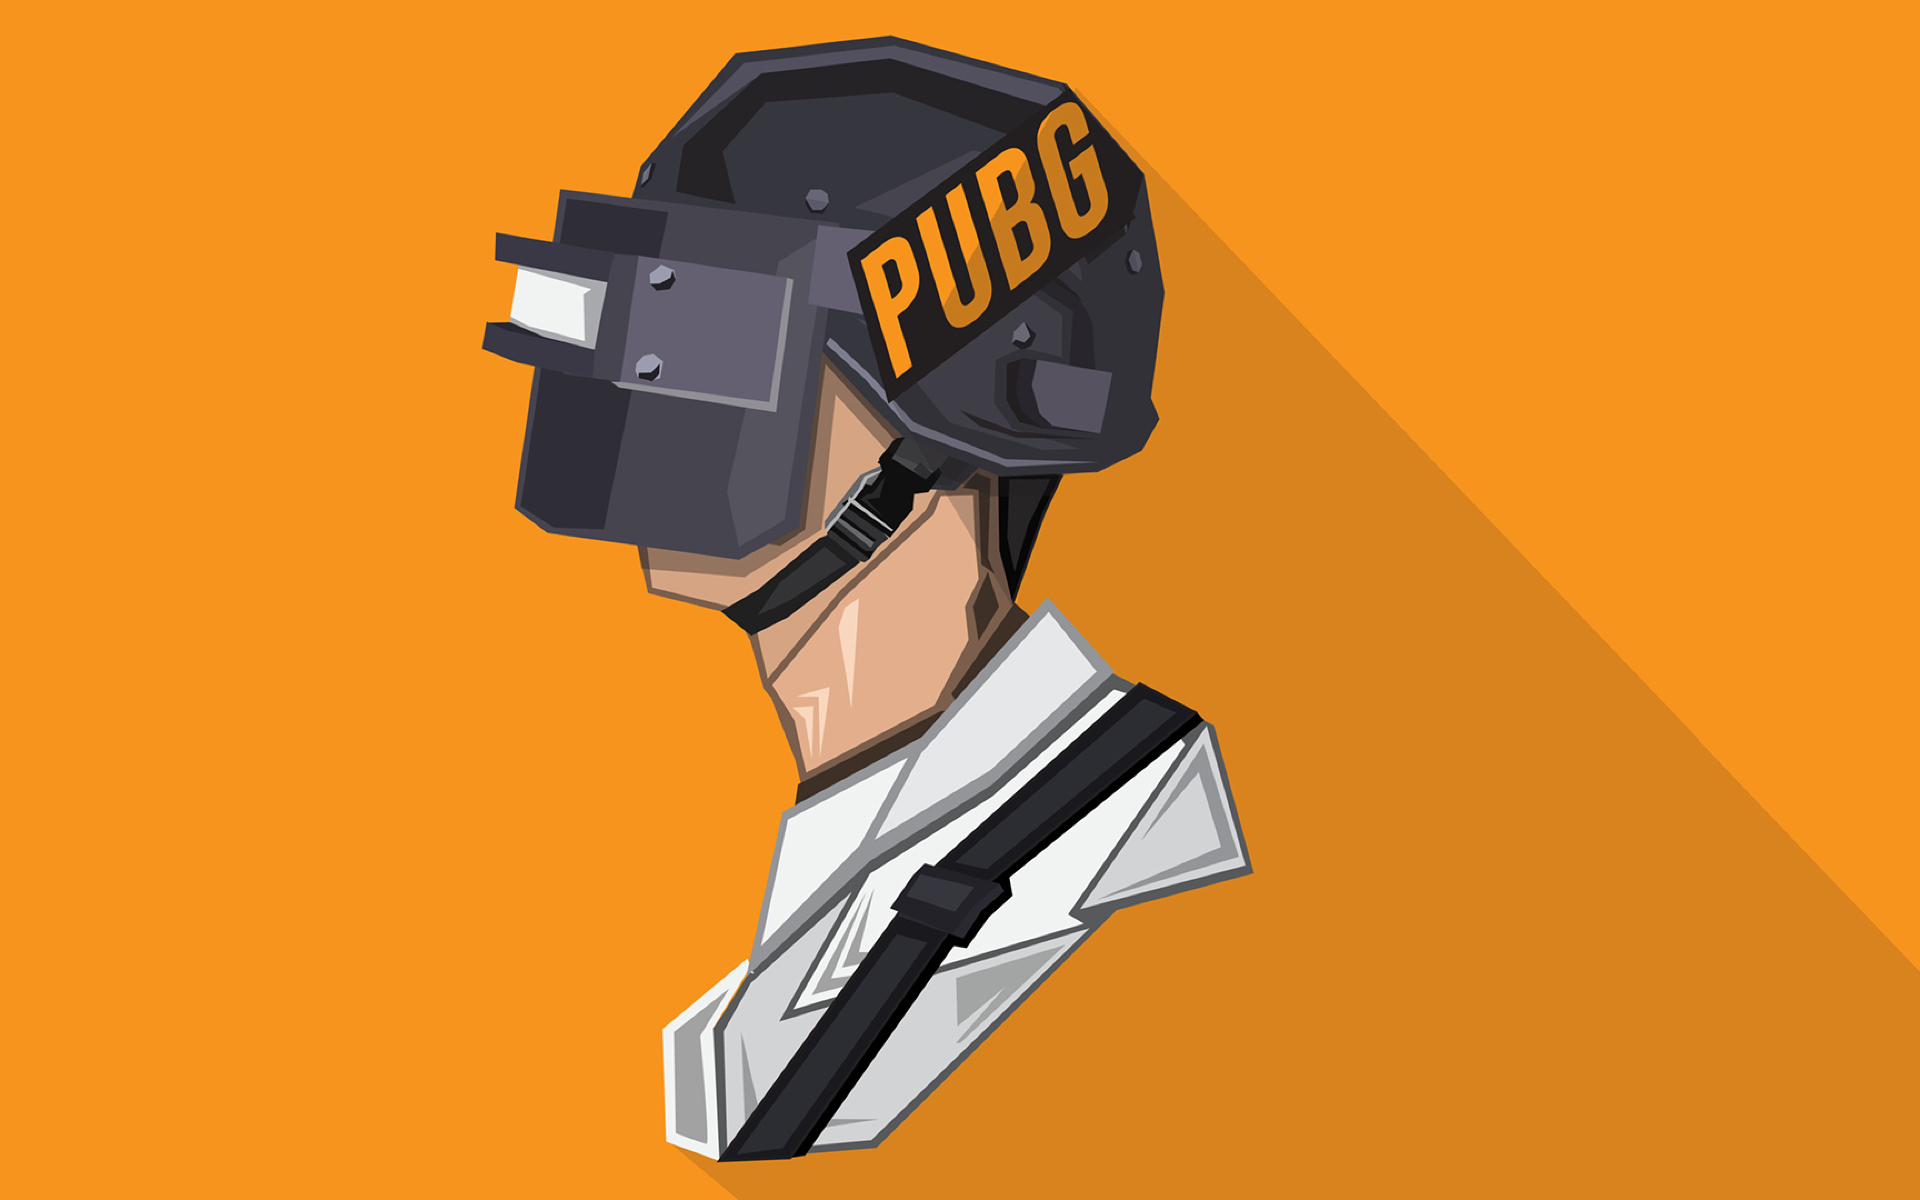 Download Pubg Minimalist Pophead 7680x4320 Resolution